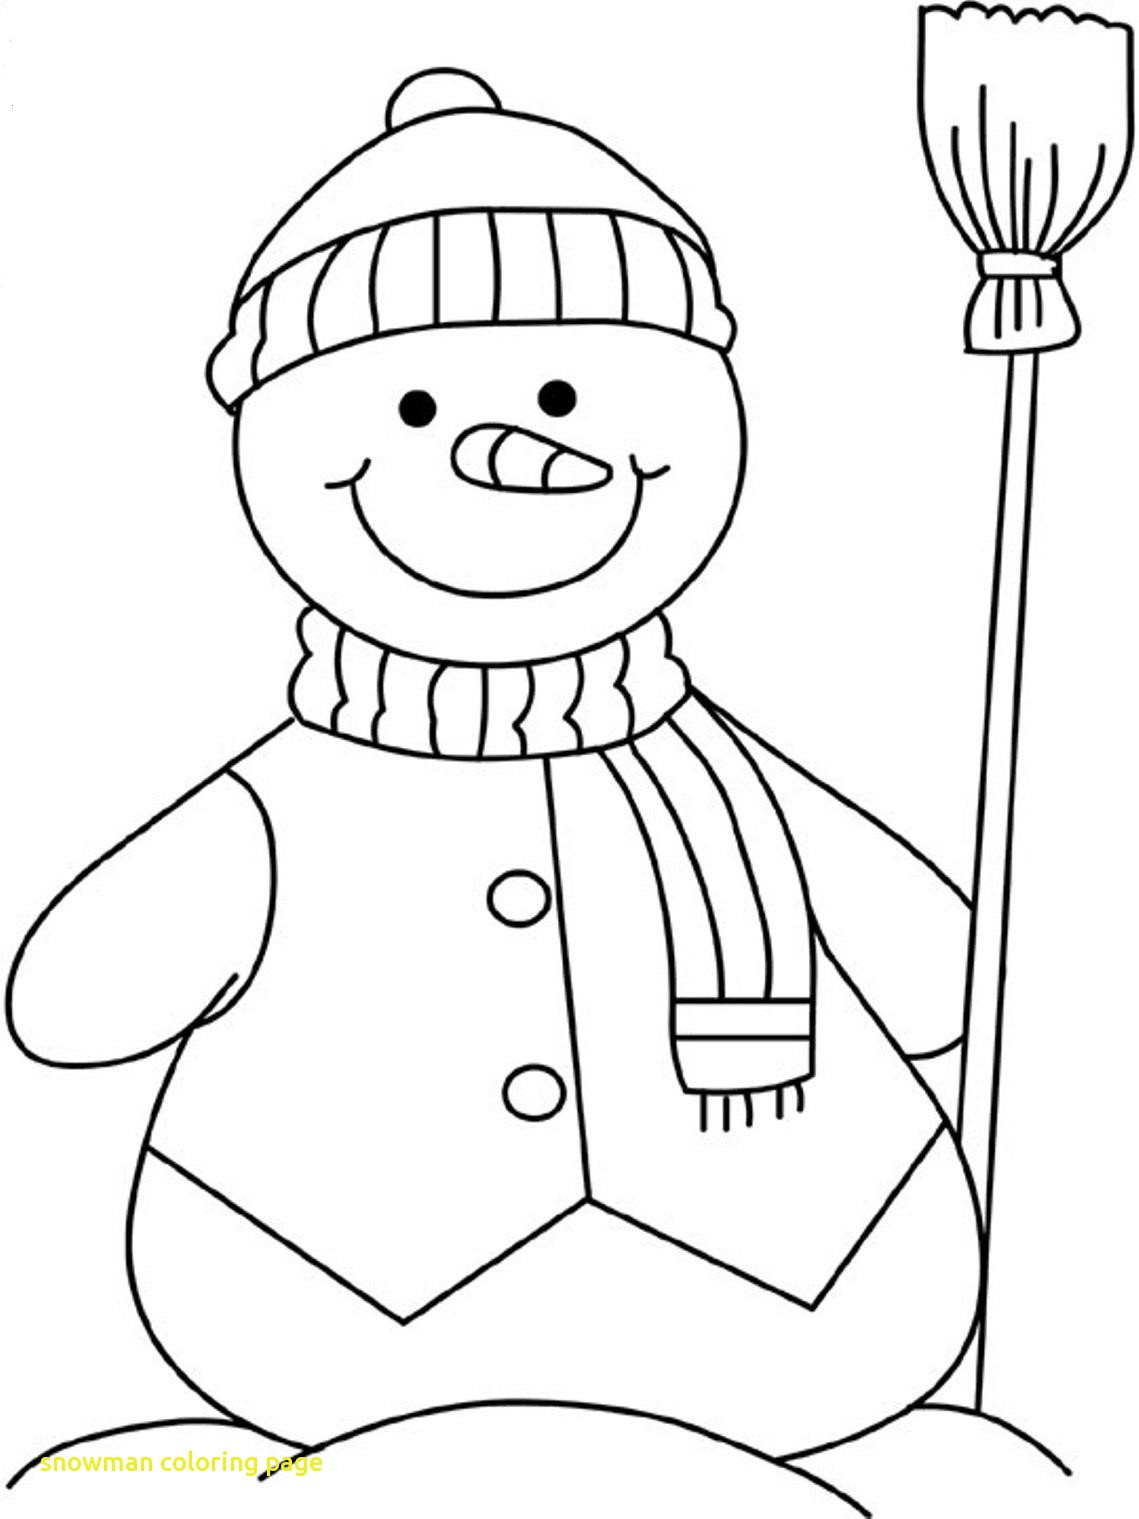 1139x1519 Secrets Snowman Colouring Pictures Coloring Page With Drawn Pencil